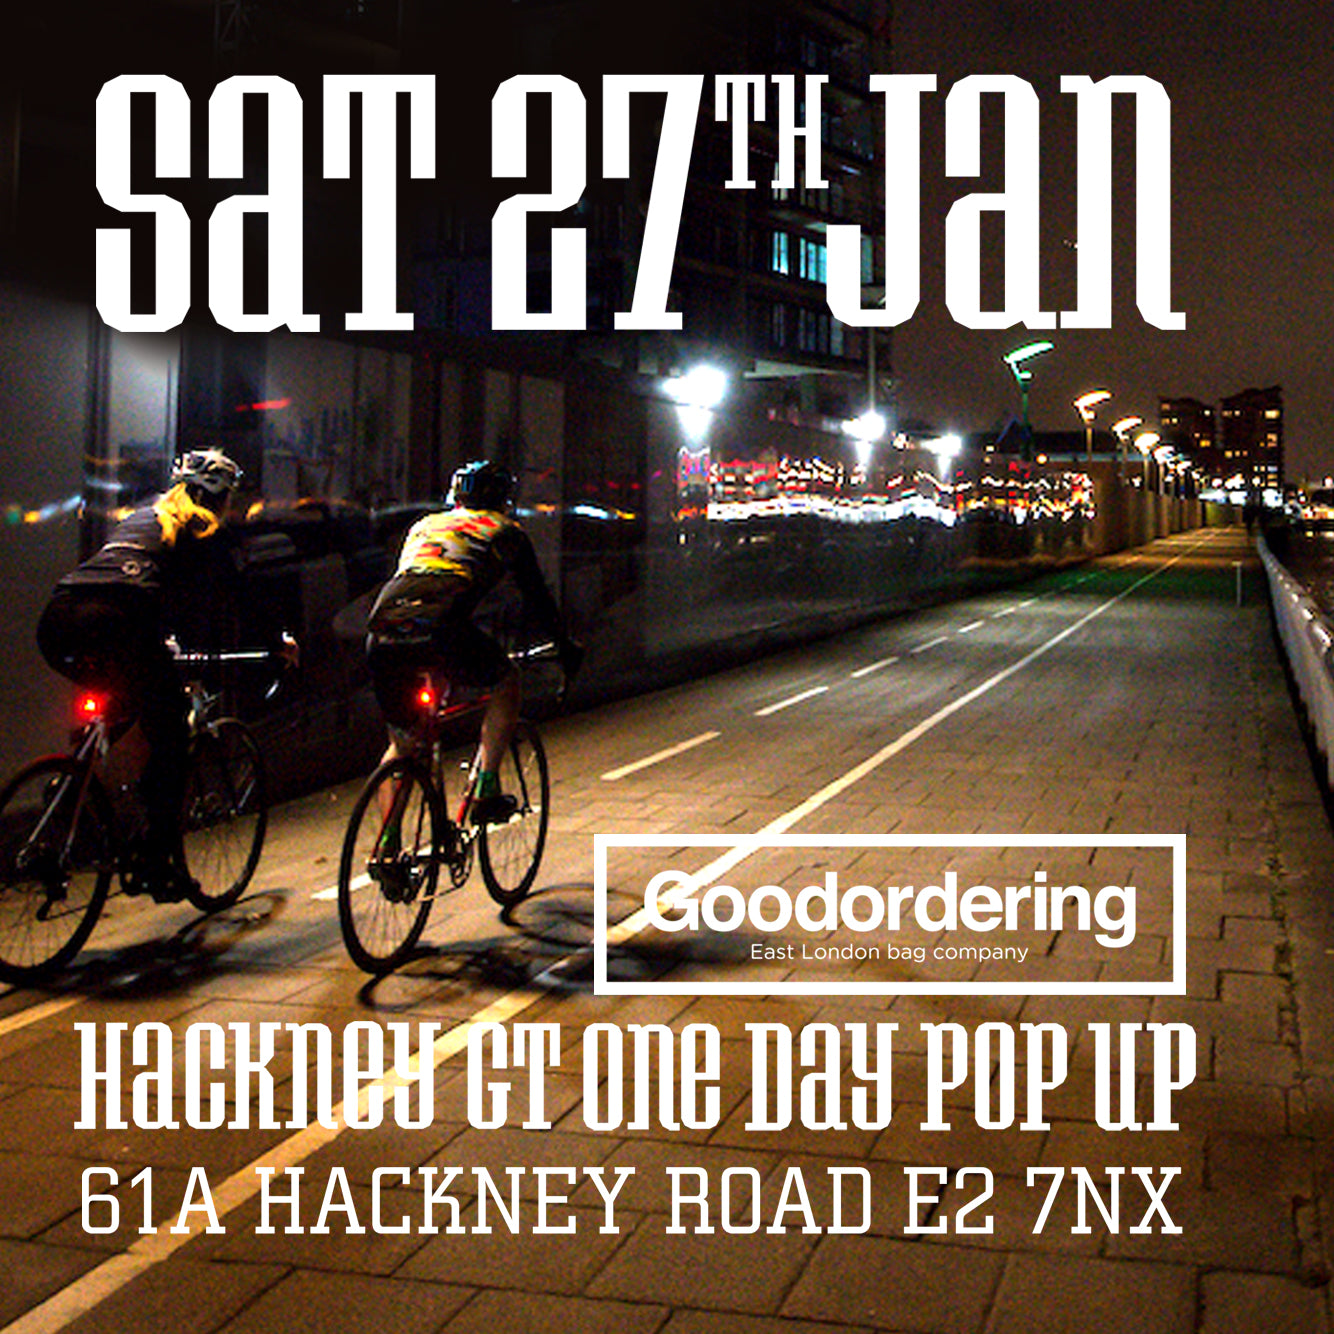 Hackney GT one day pop up